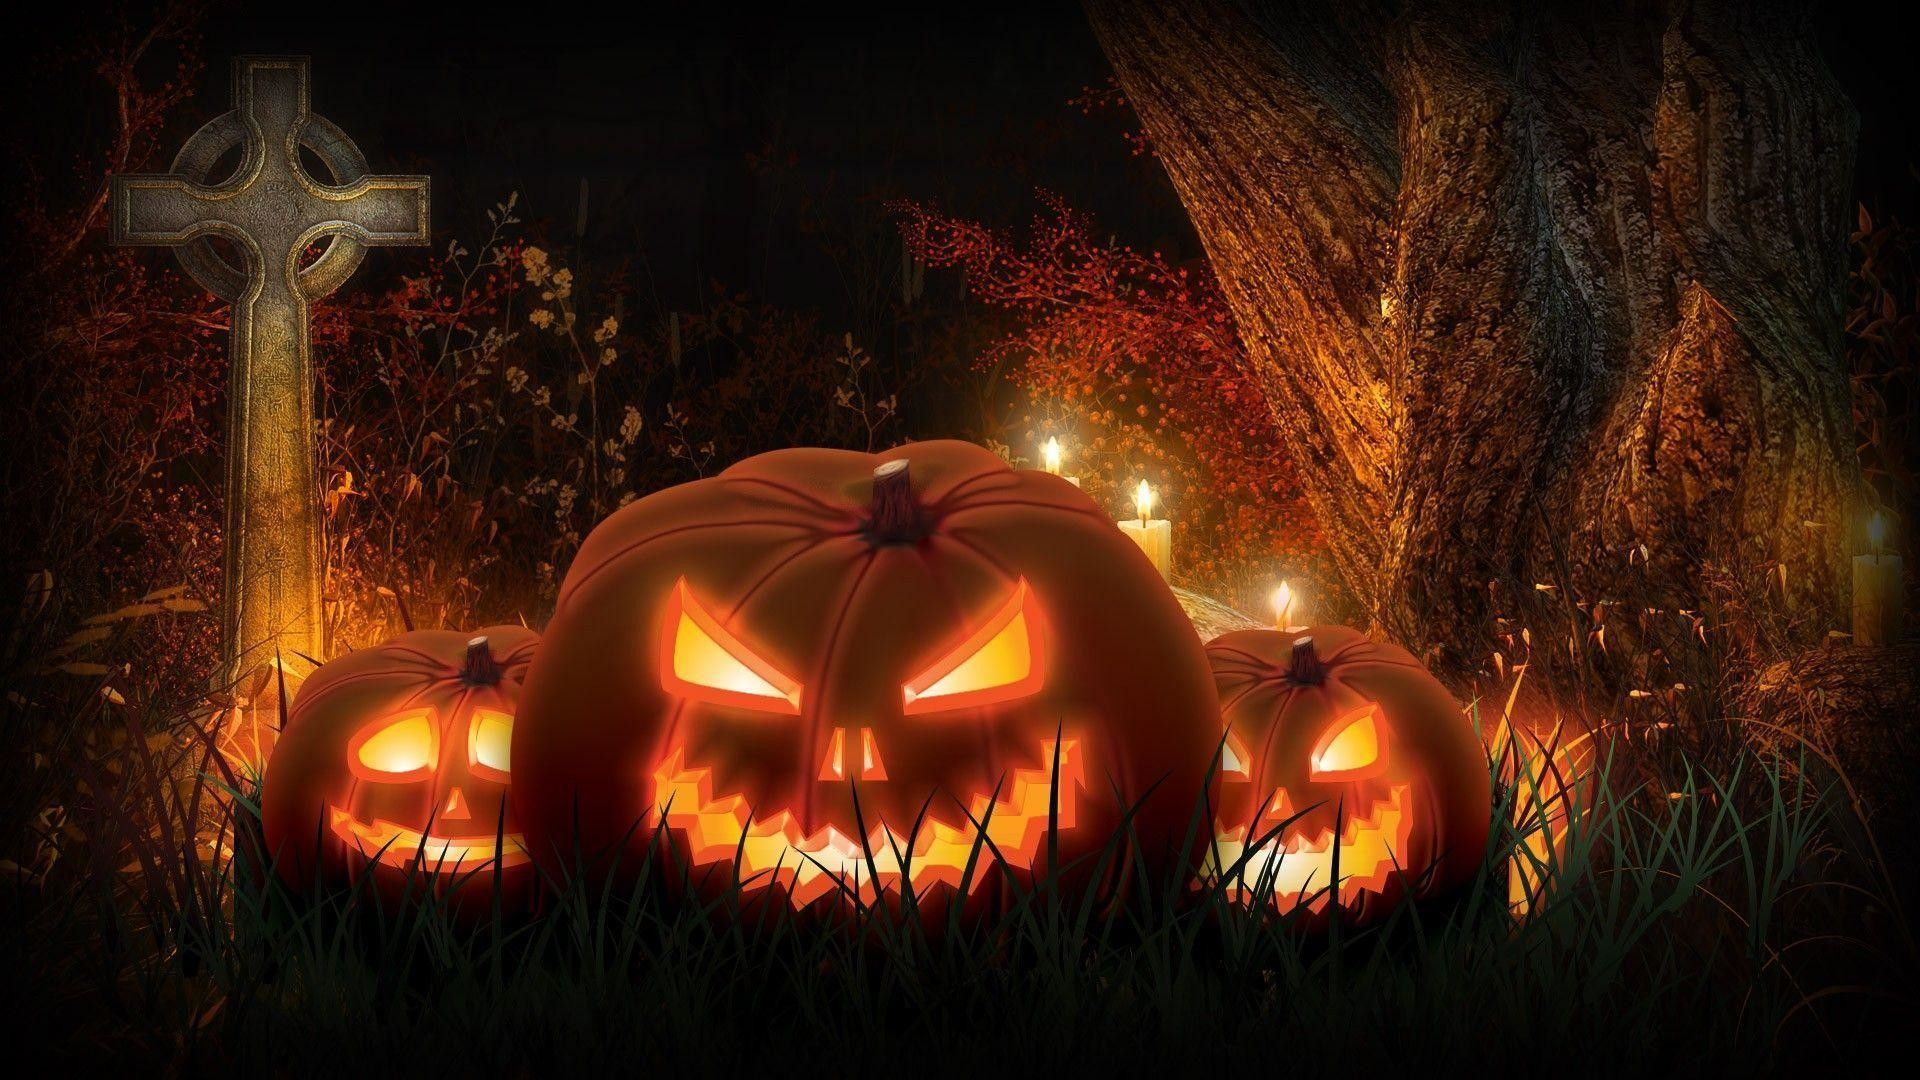 Pin By Dustie Wallace On Halloween Pumpkin Wallpaper Halloween Pumpkin Images Halloween Pictures